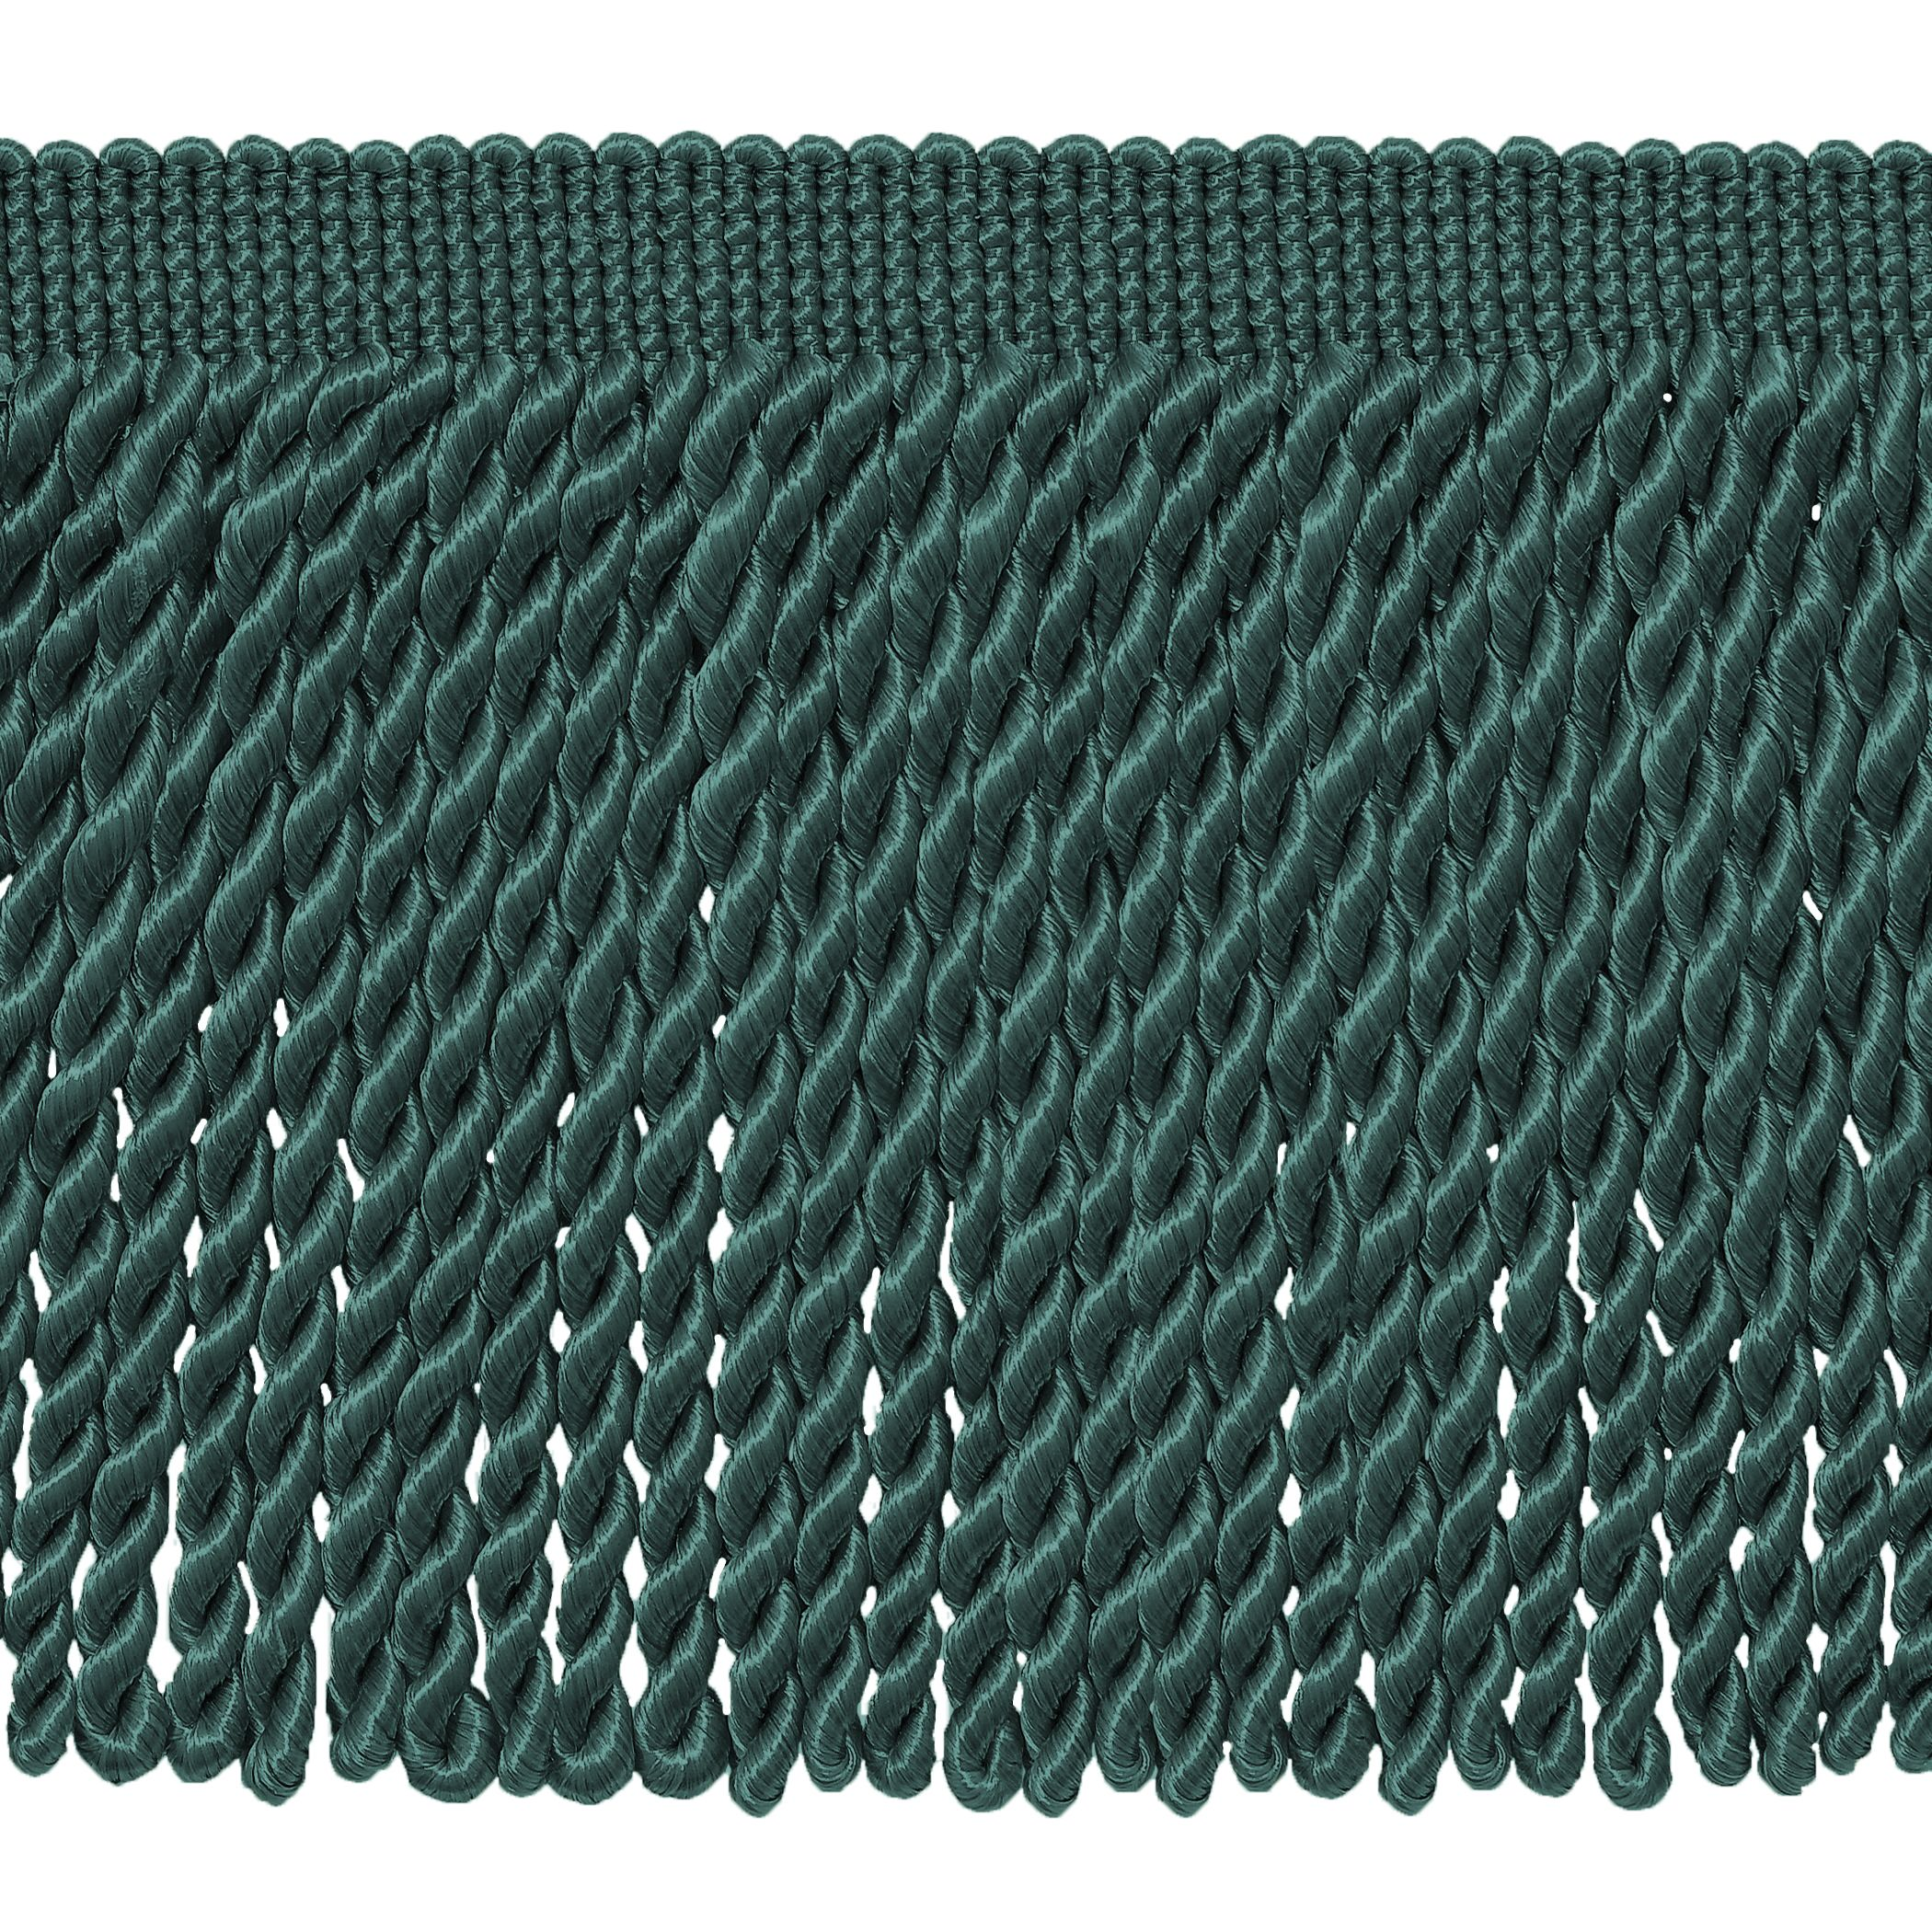 6 Inch Long, Teal Blue Bullion Fringe Trim, Basic Trim Collection, Style# BFS6 Color: 9620 - Light Peacock, Sold By the Yard